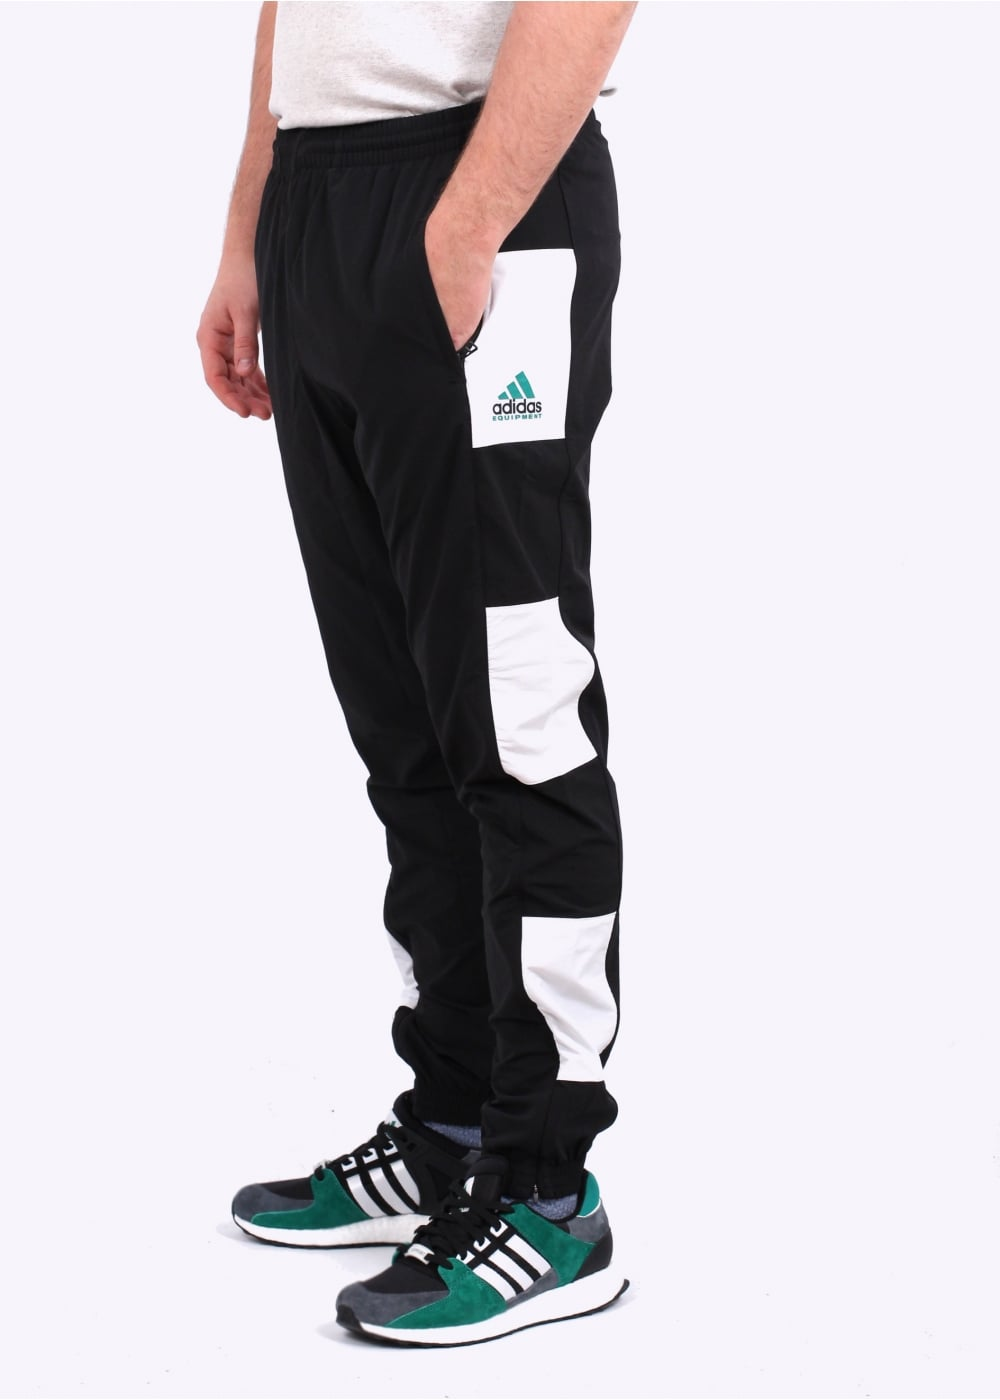 adidas eqt one to one pants